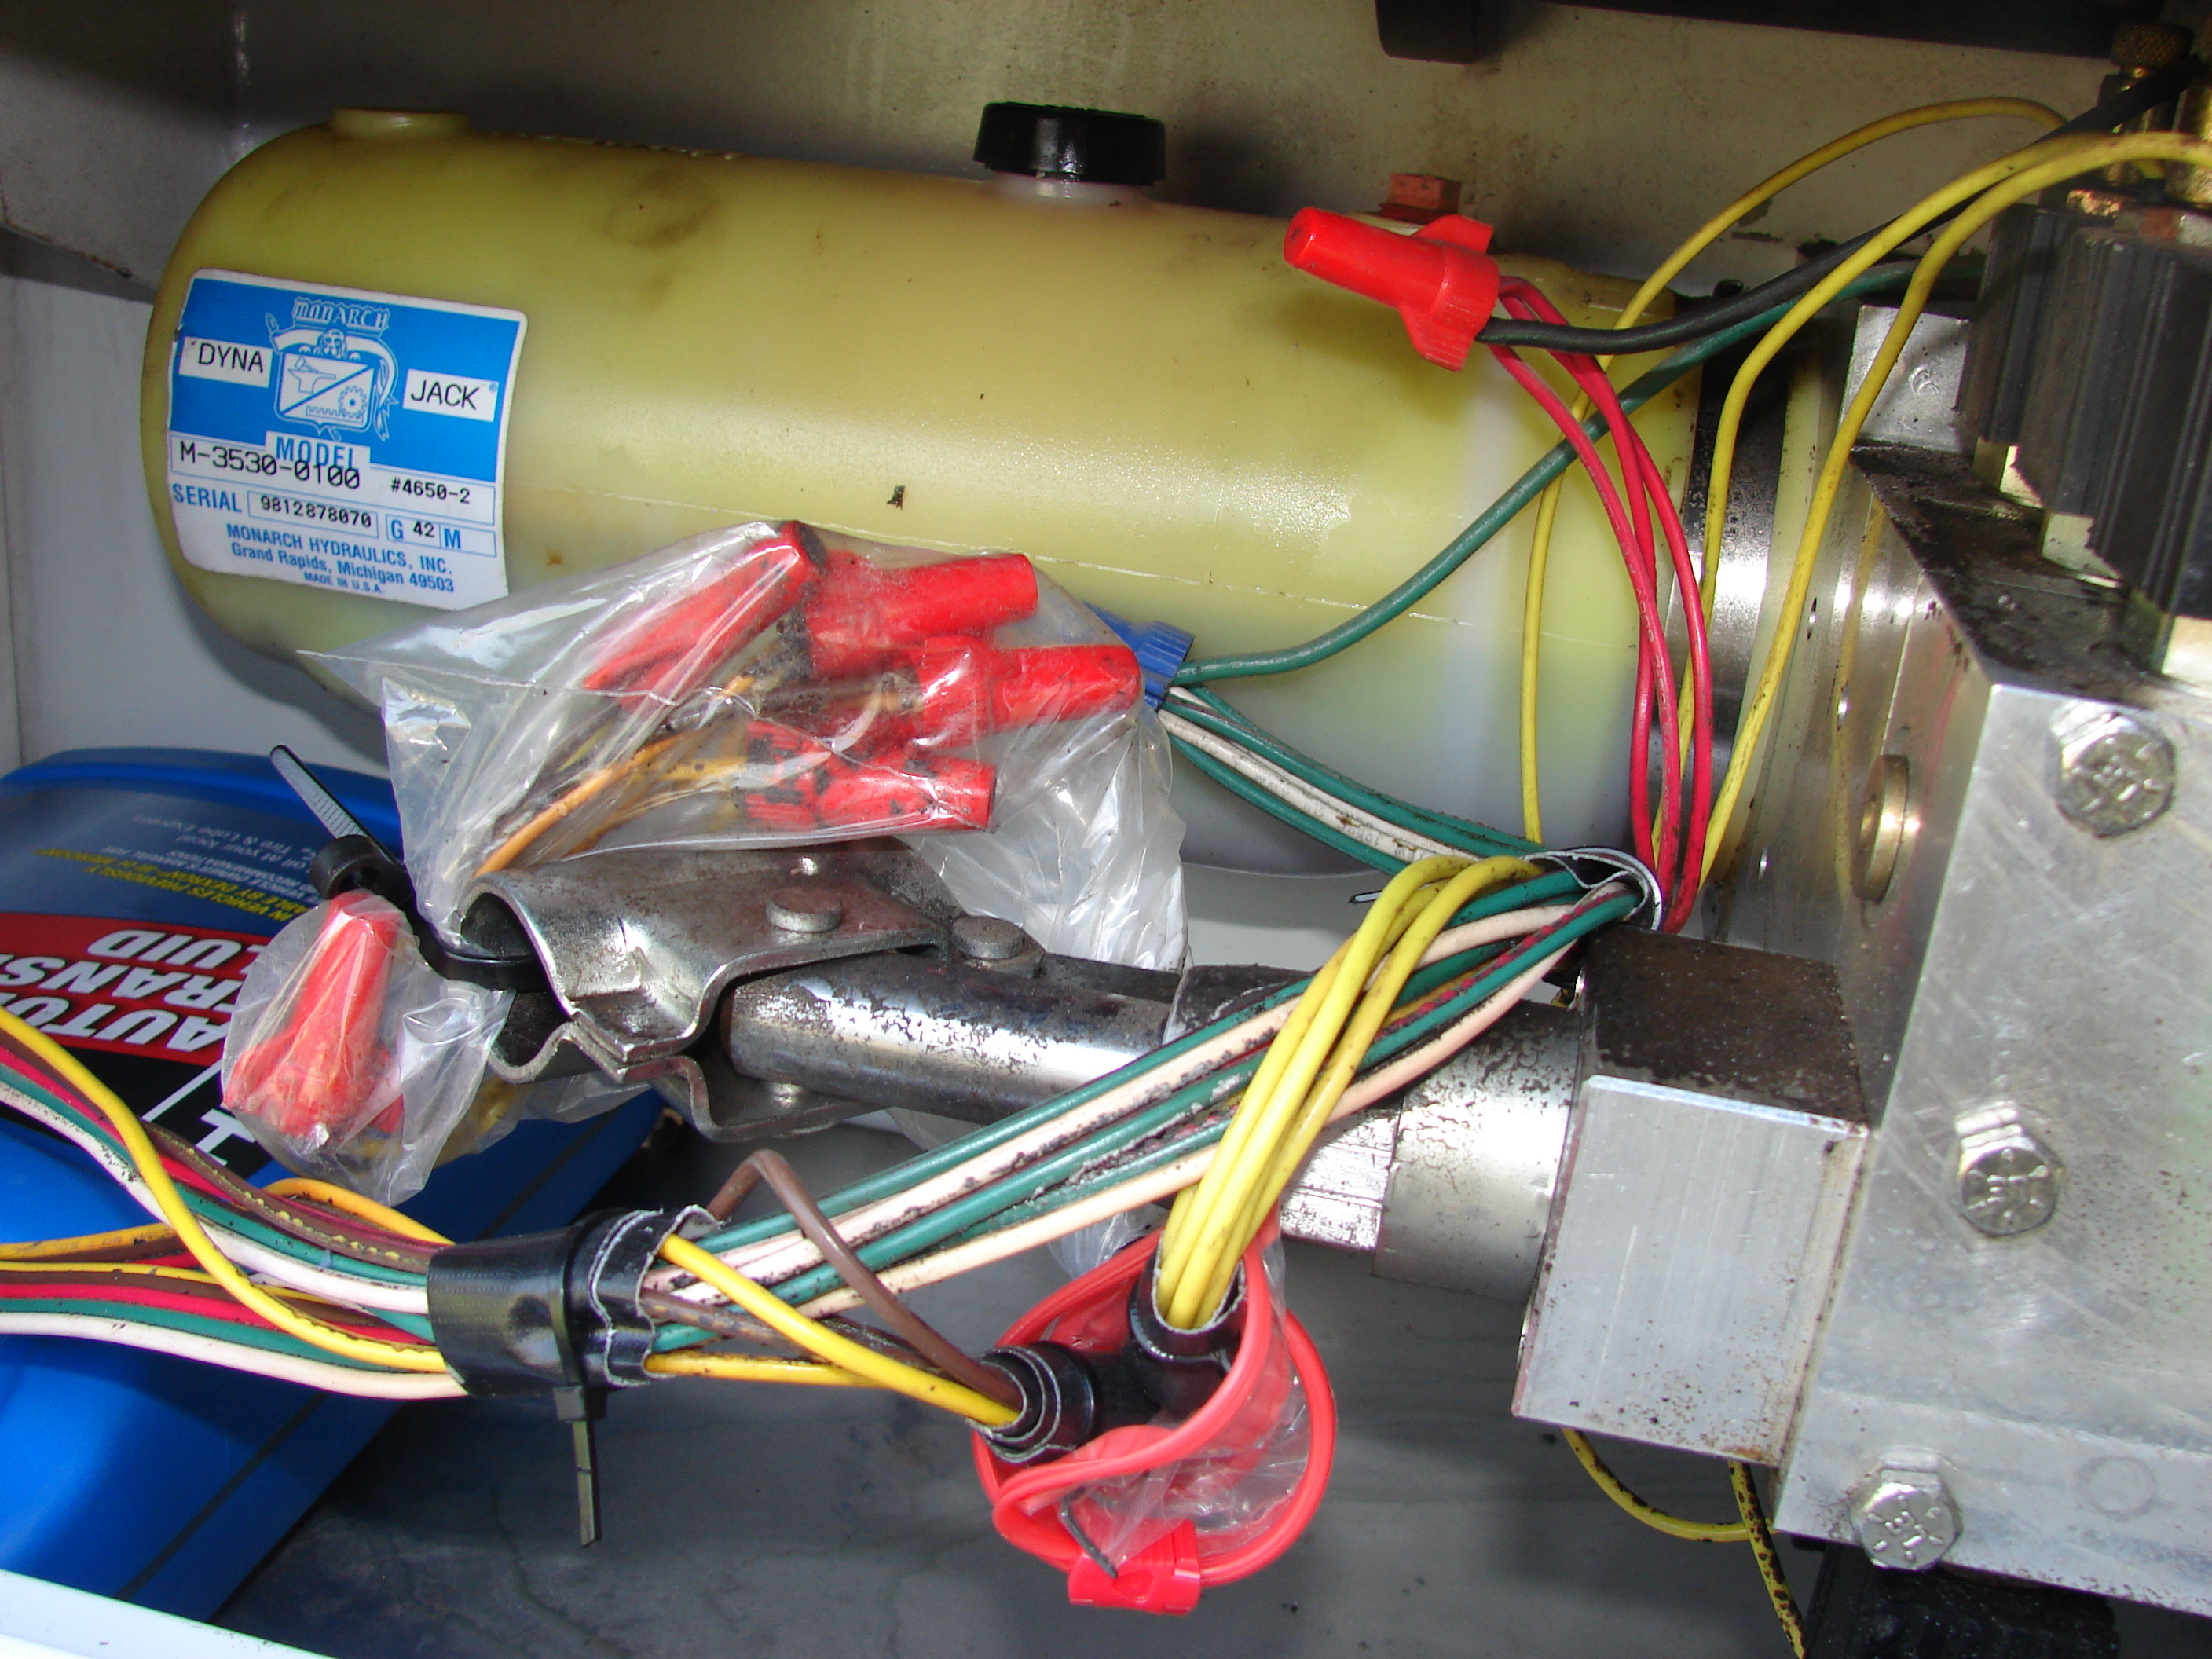 Monarch Hydraulic Wiring Diagram M 3530 Trusted Diagrams Hydraulics 1999 Nu Wa Snowbird Se Has A Living Room Slide That Is Leaking It Check Valve